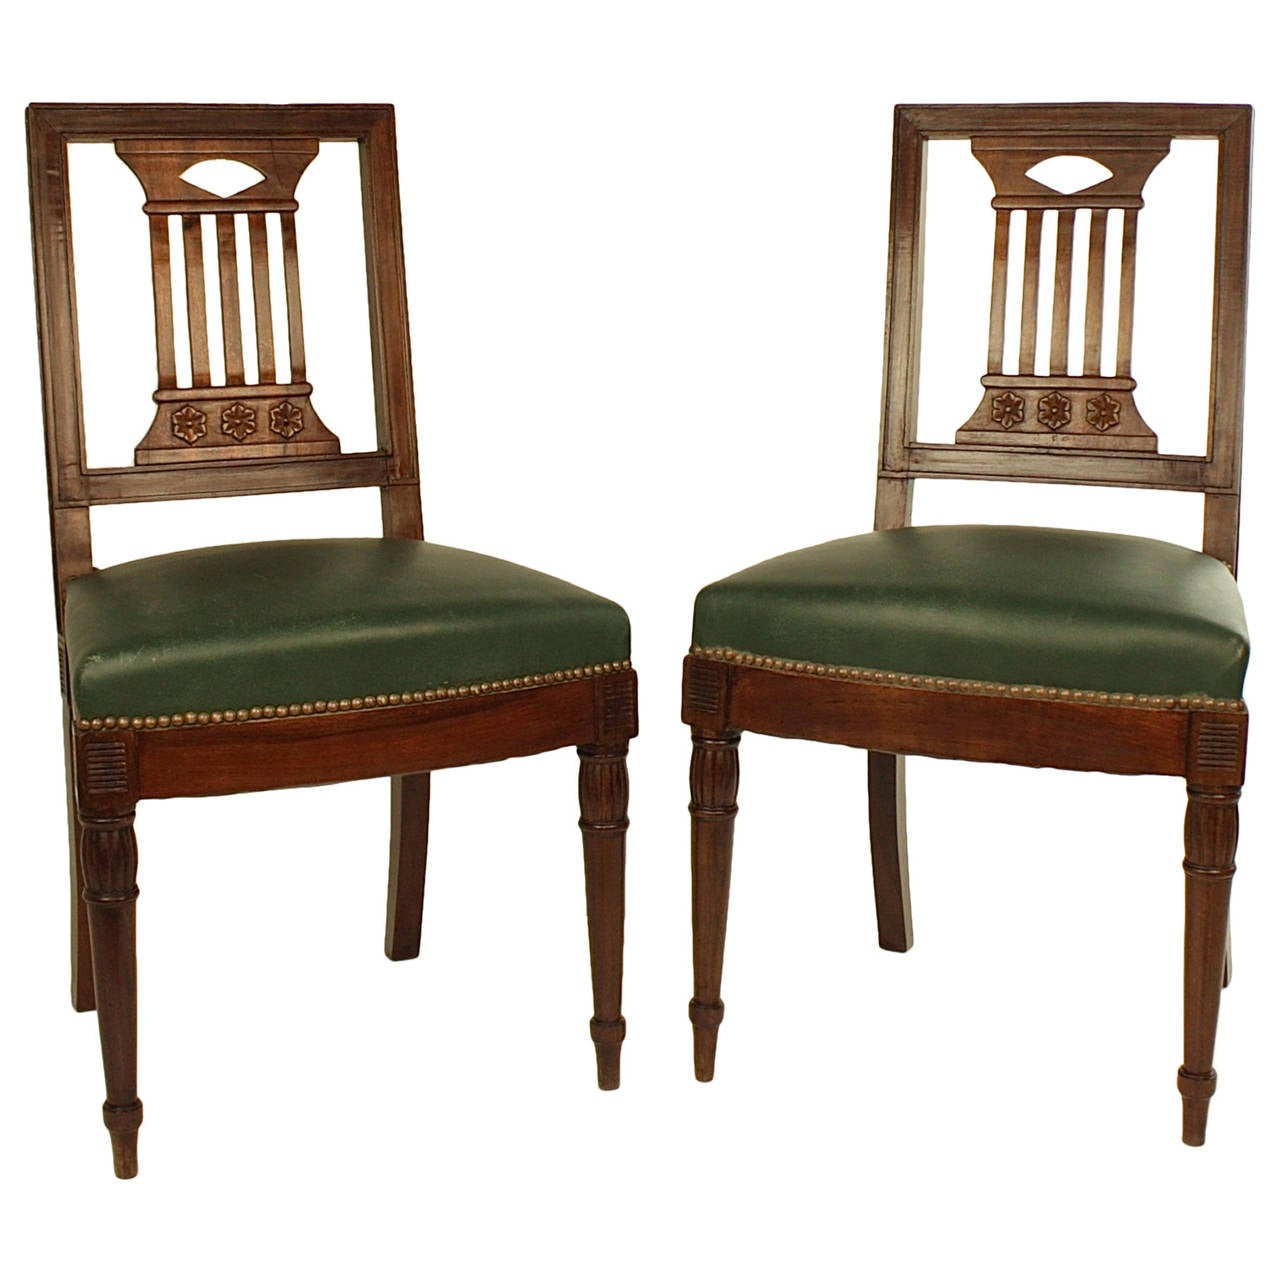 Pair of Early 19th Century Chairs, in the manner of Bellange frere, circa 1810 For Sale